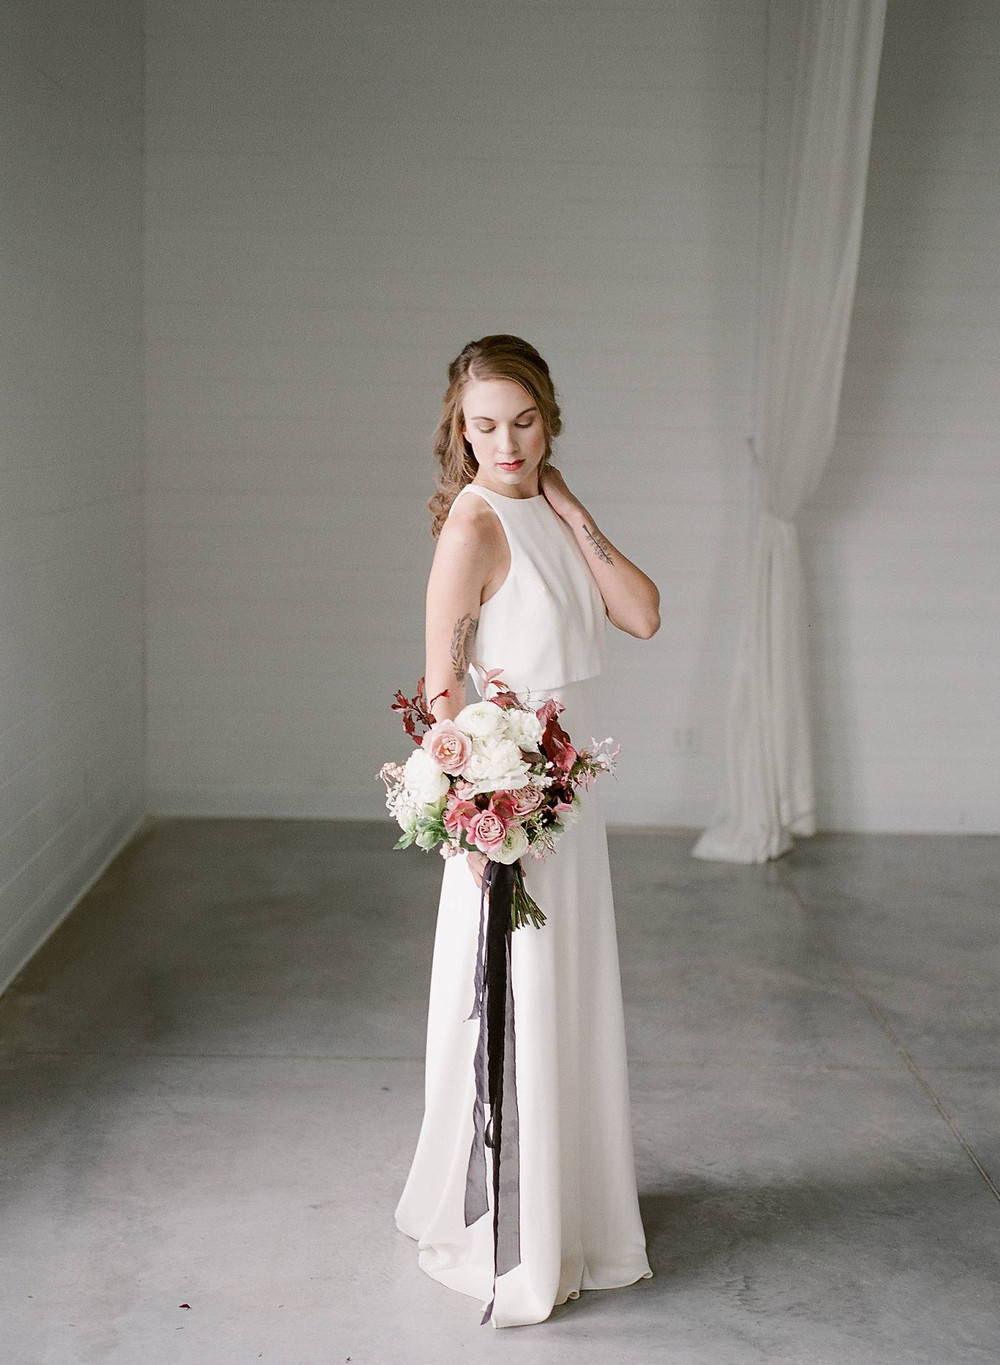 Modern bride with Studio Bloom Iowa flower bouquet of peonies, roses, ranunculus, hellebores, and plum at ashton hill farm